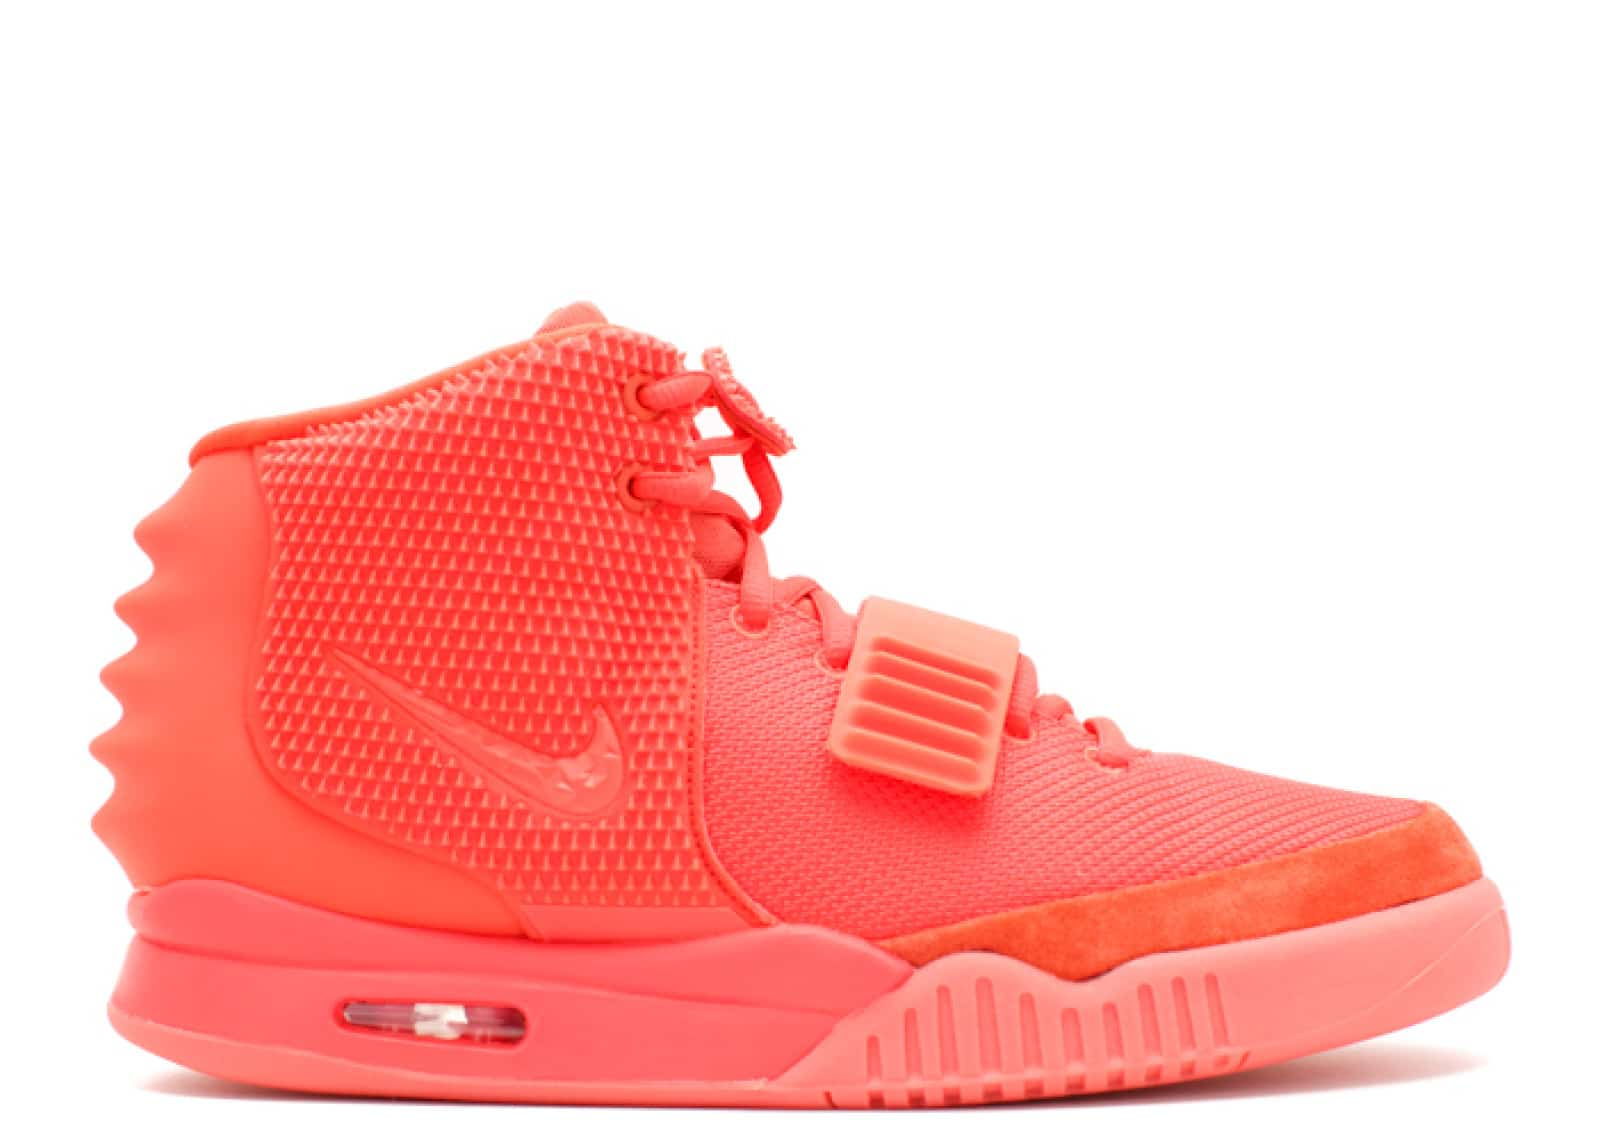 Almeja meteorito Acostumbrados a  nike air yeezy ii red october Cheaper Than Retail Price> Buy Clothing,  Accessories and lifestyle products for women & men -